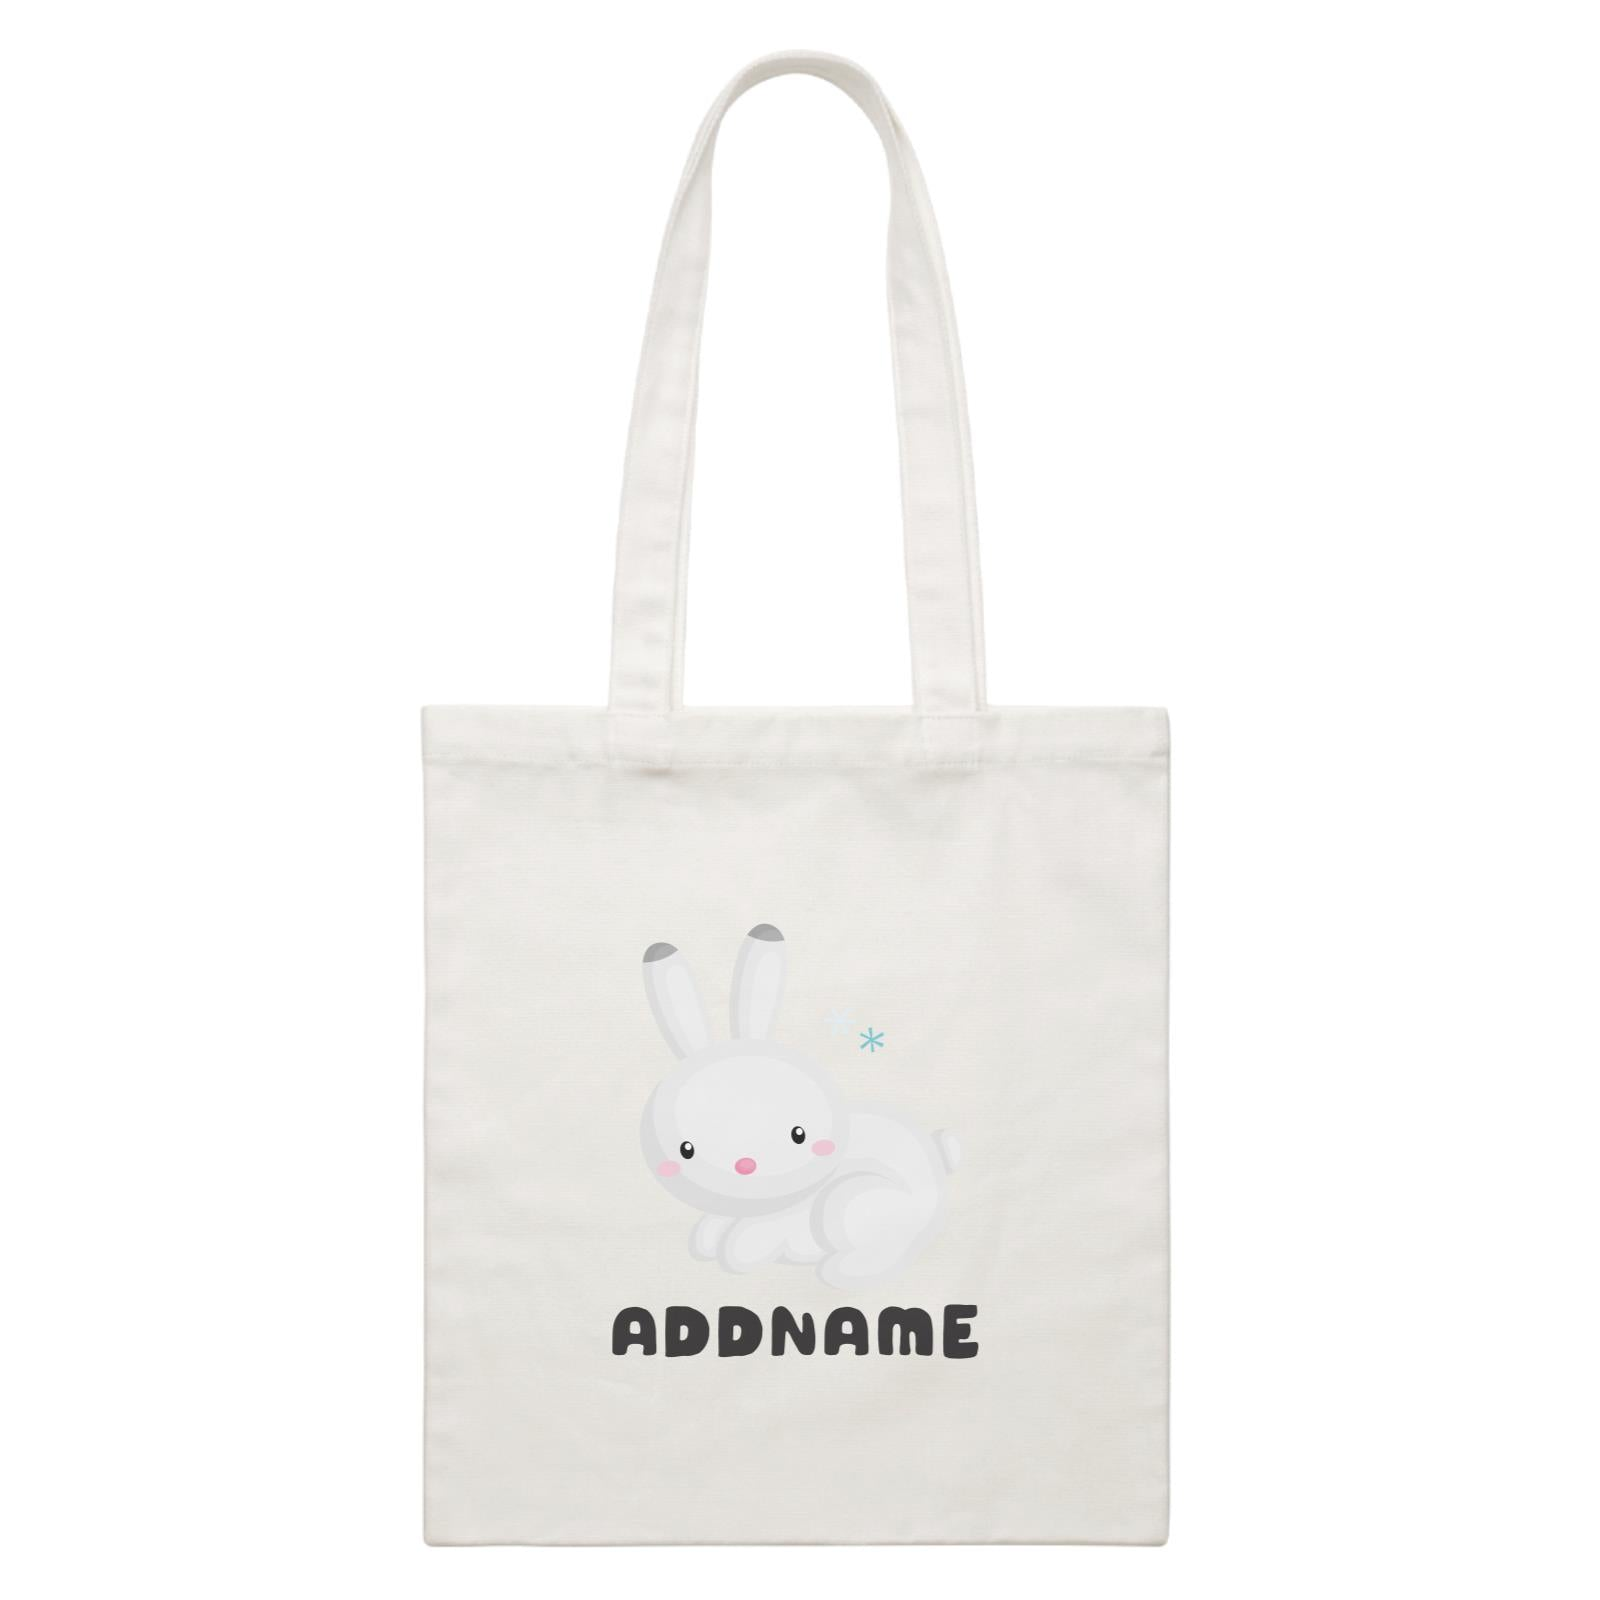 Birthday Winter Animals Snow Rabbit Addname White Canvas Bag